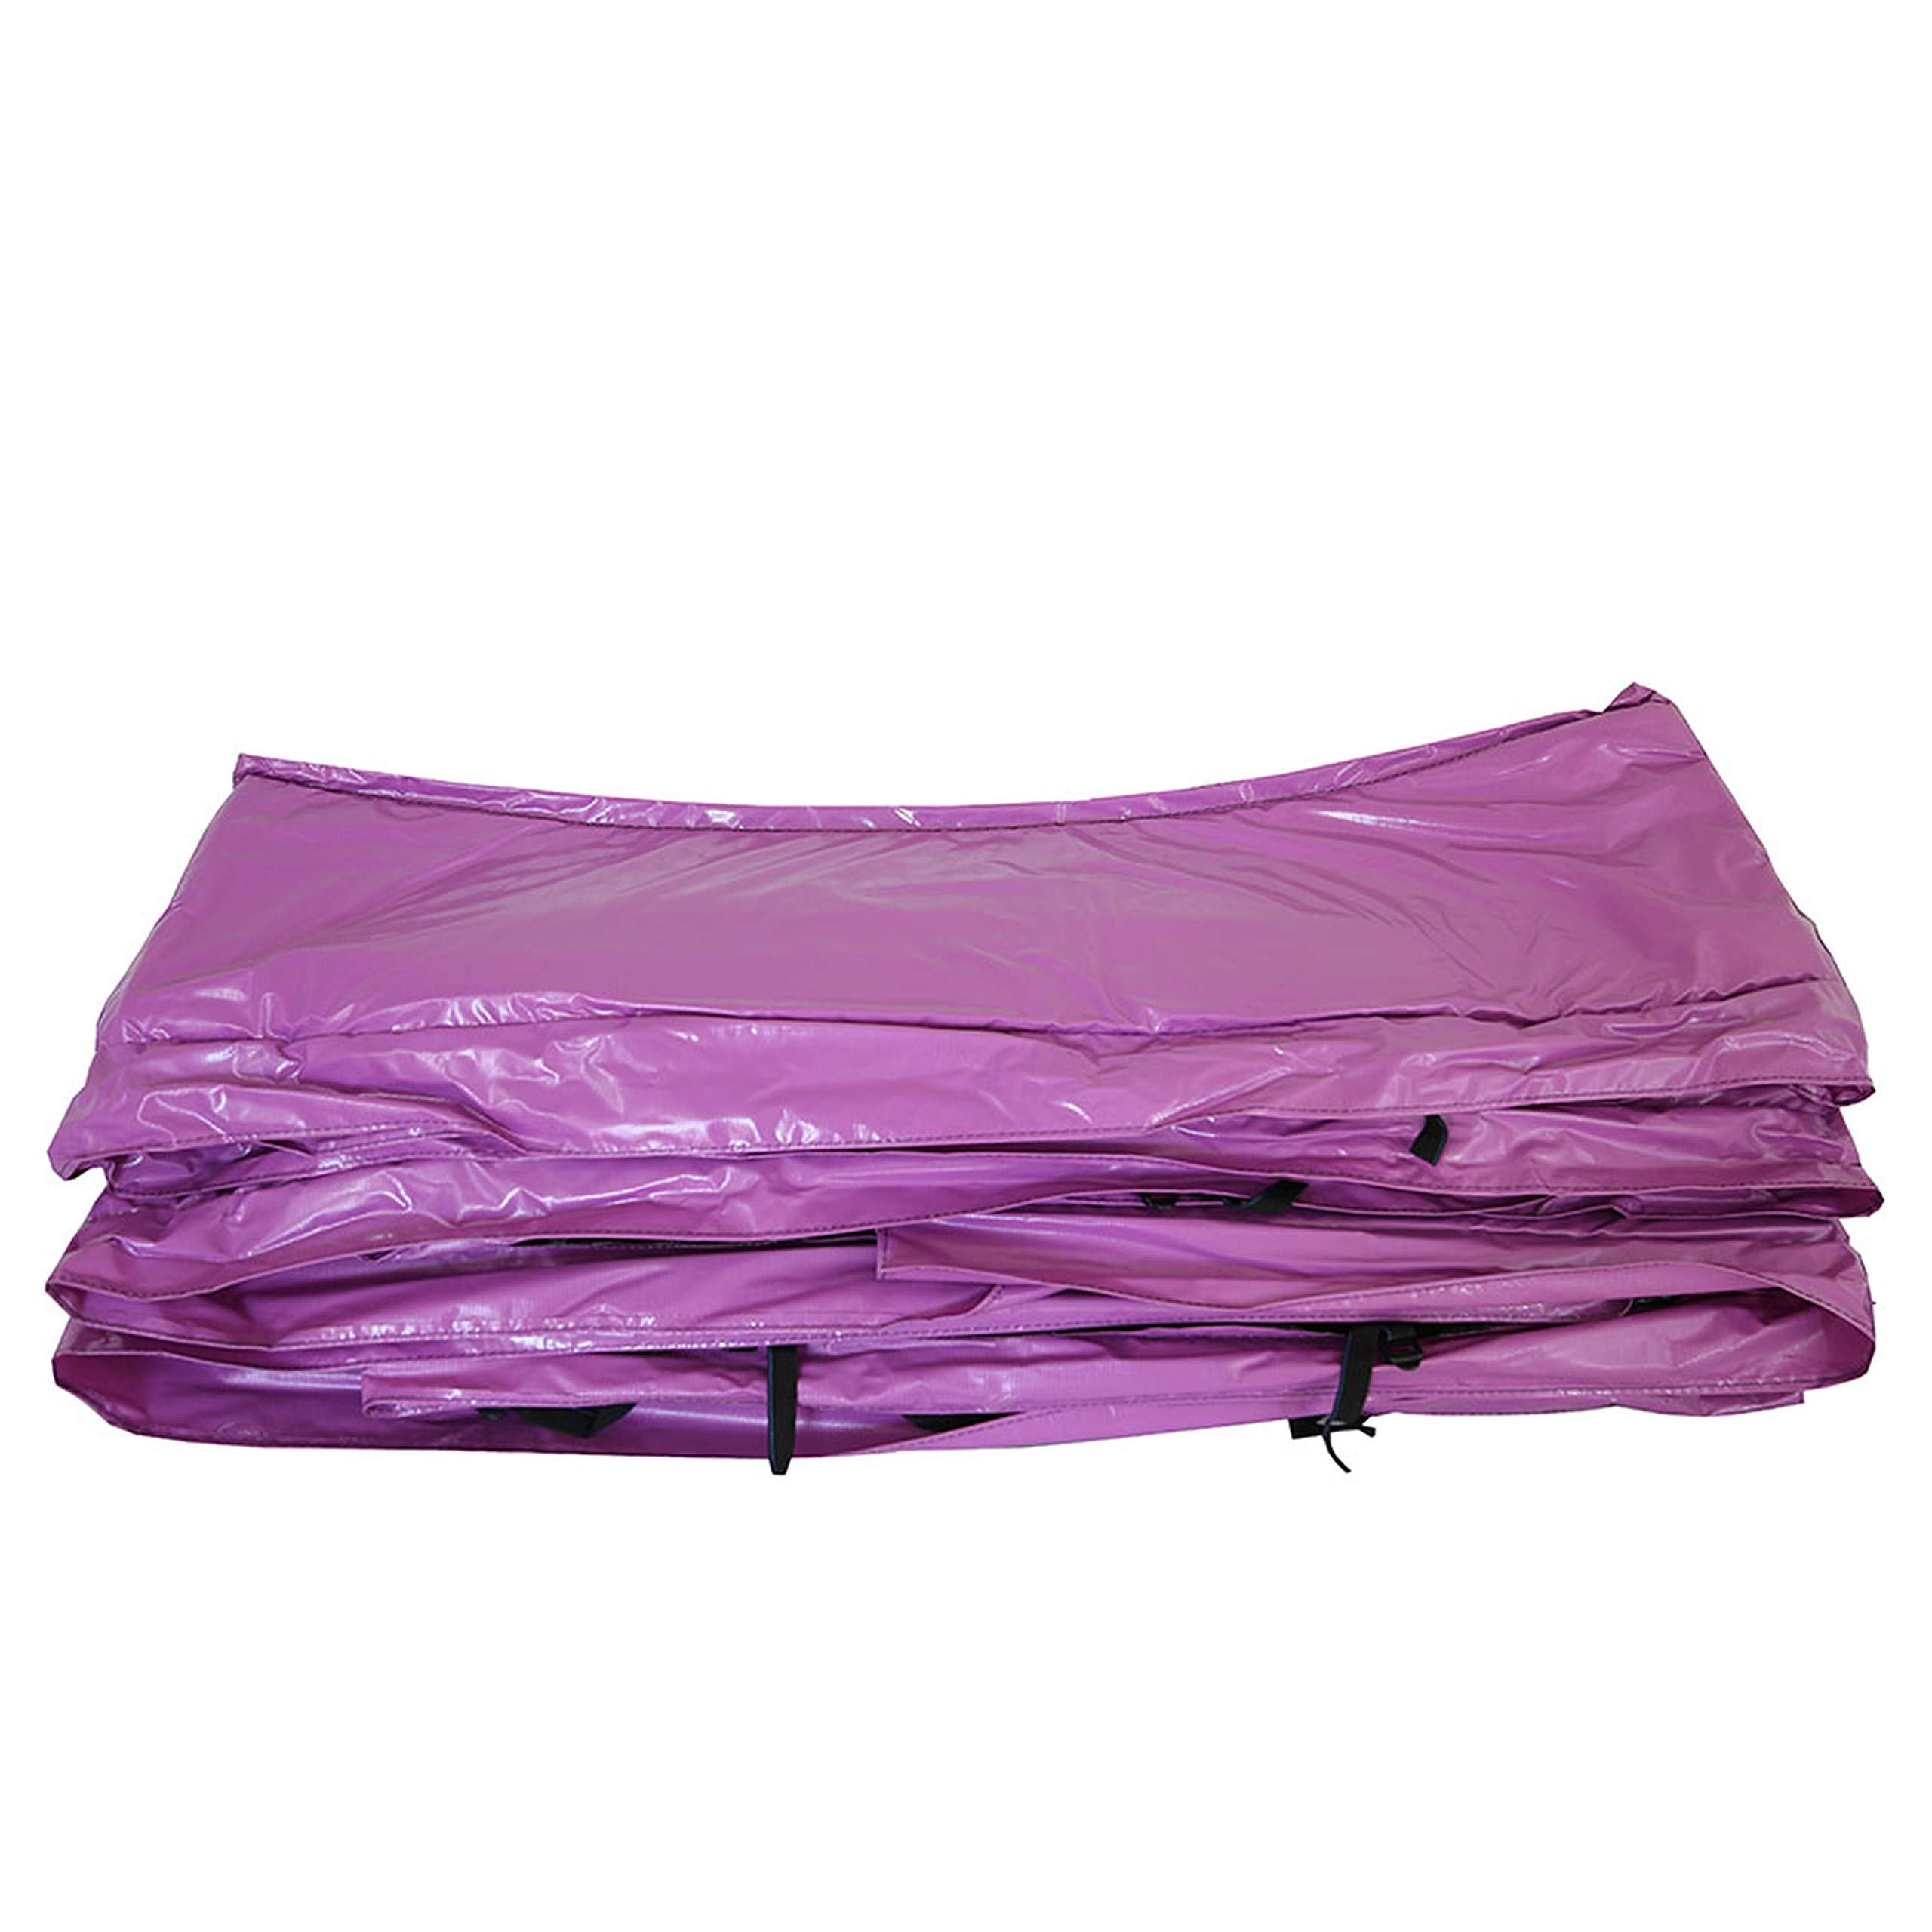 Skywalker Trampolines Purple 15' Round Spring Pad by Skywalker Trampolines